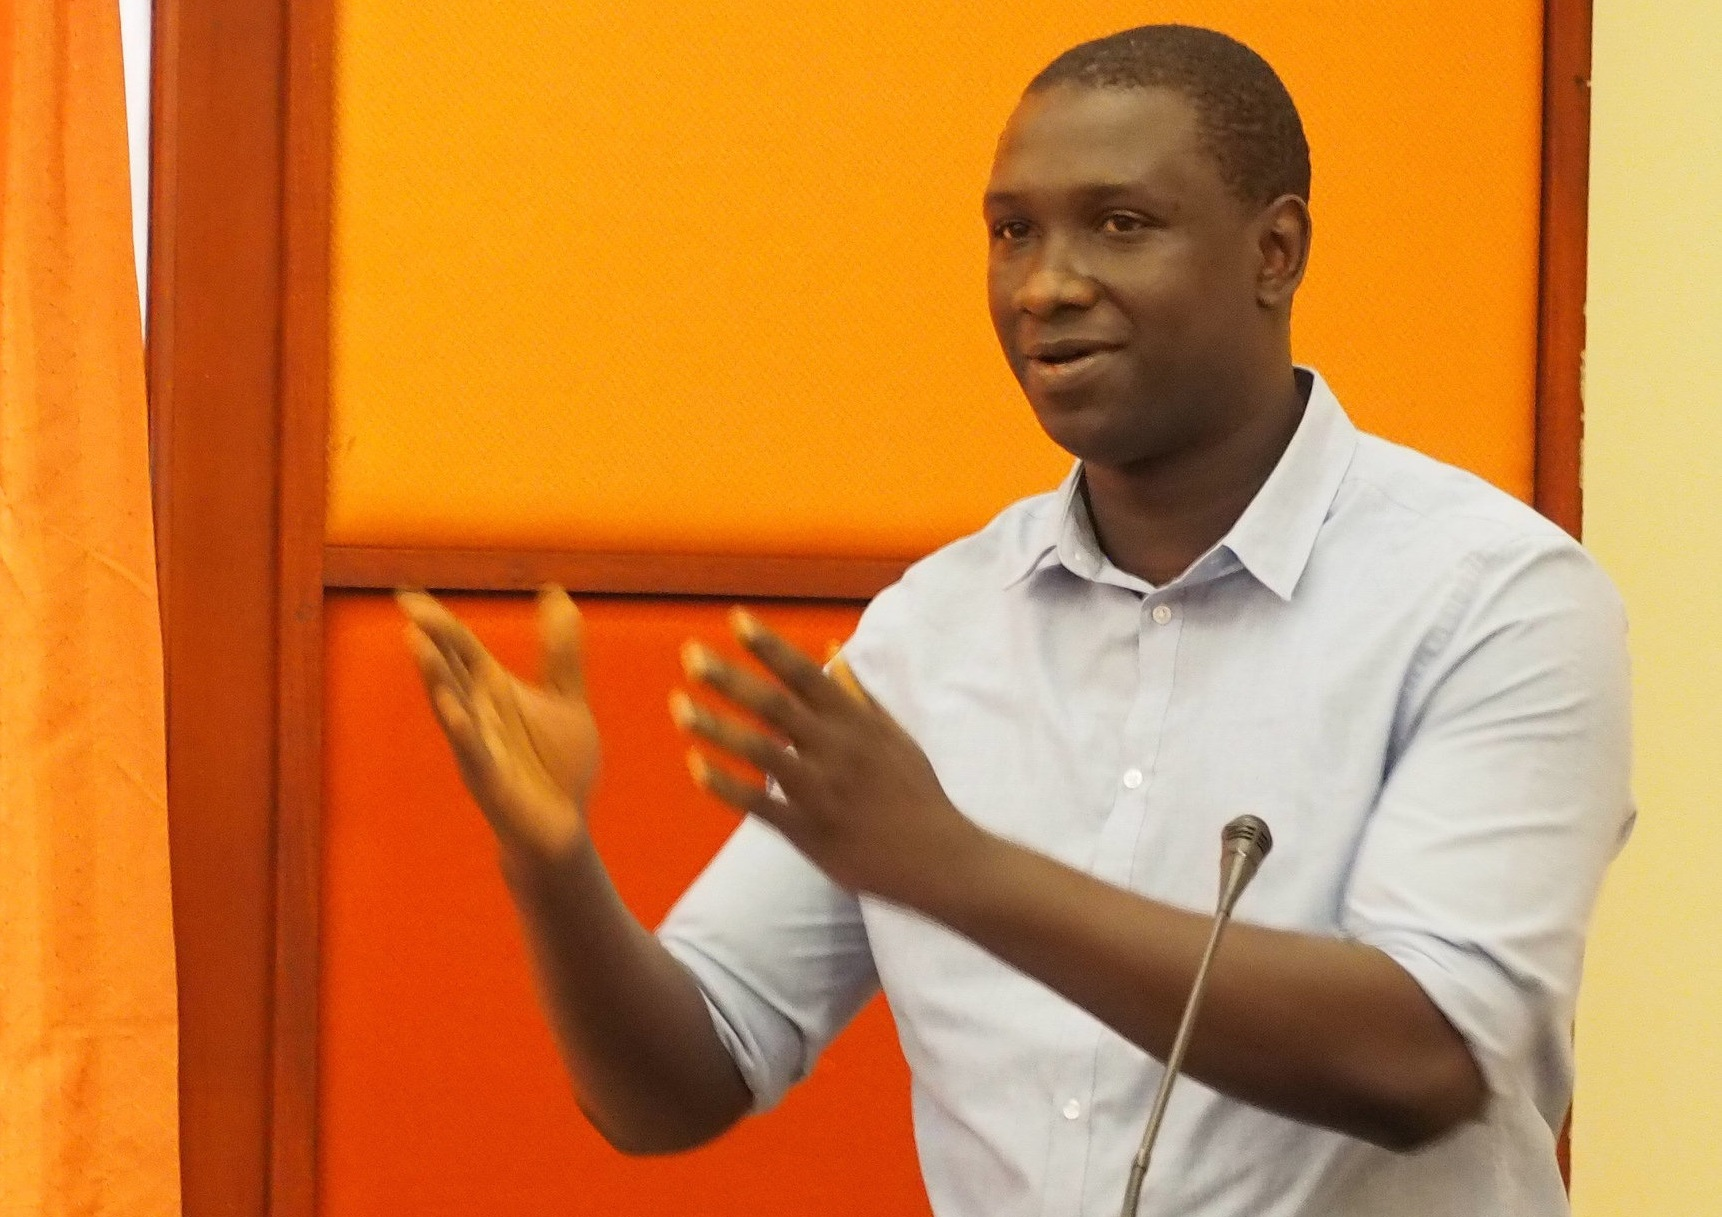 Dr. Ibrahim Bangura giving a presentation. Both hands are extended and there is an orange wall in the background.